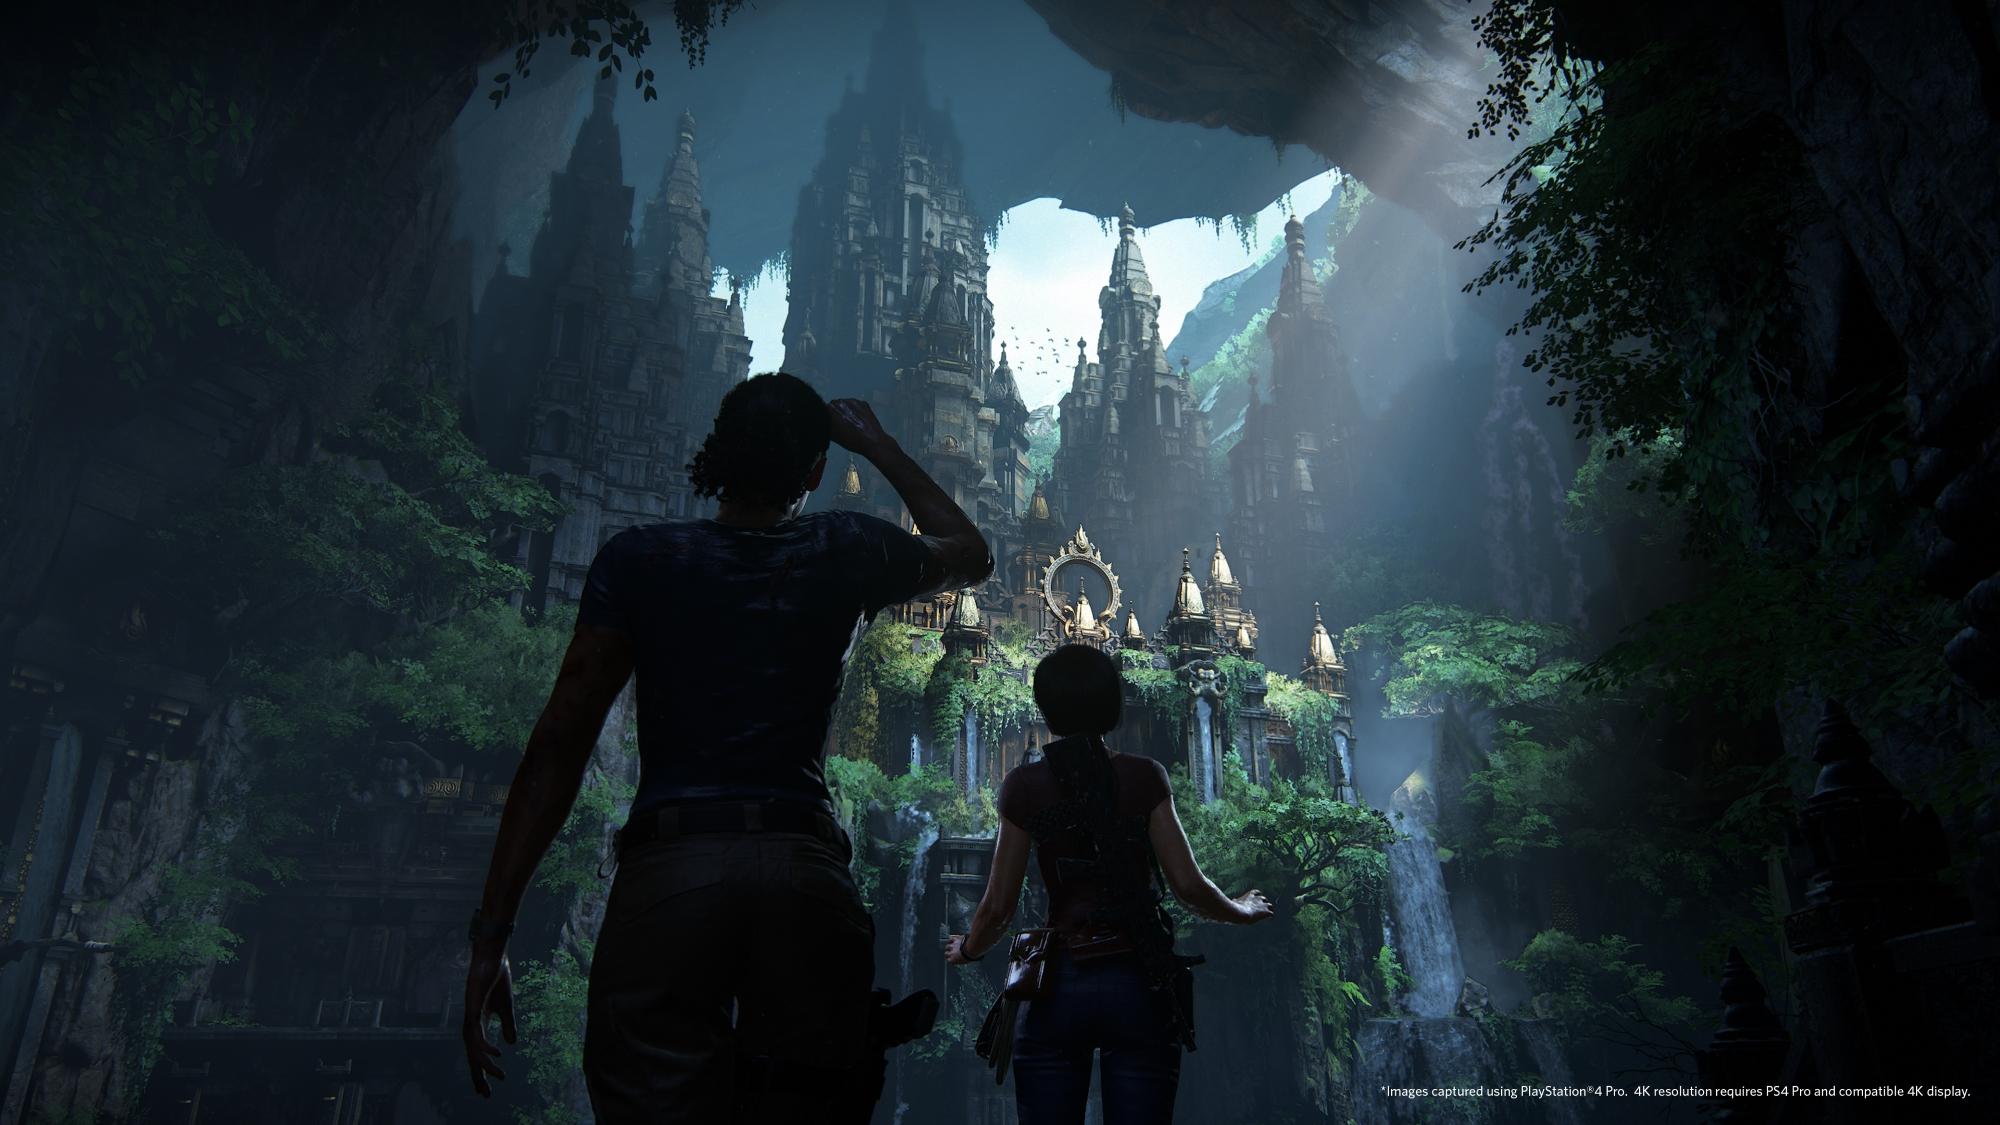 Uncharted: The Lost Legacy - Nathan who?